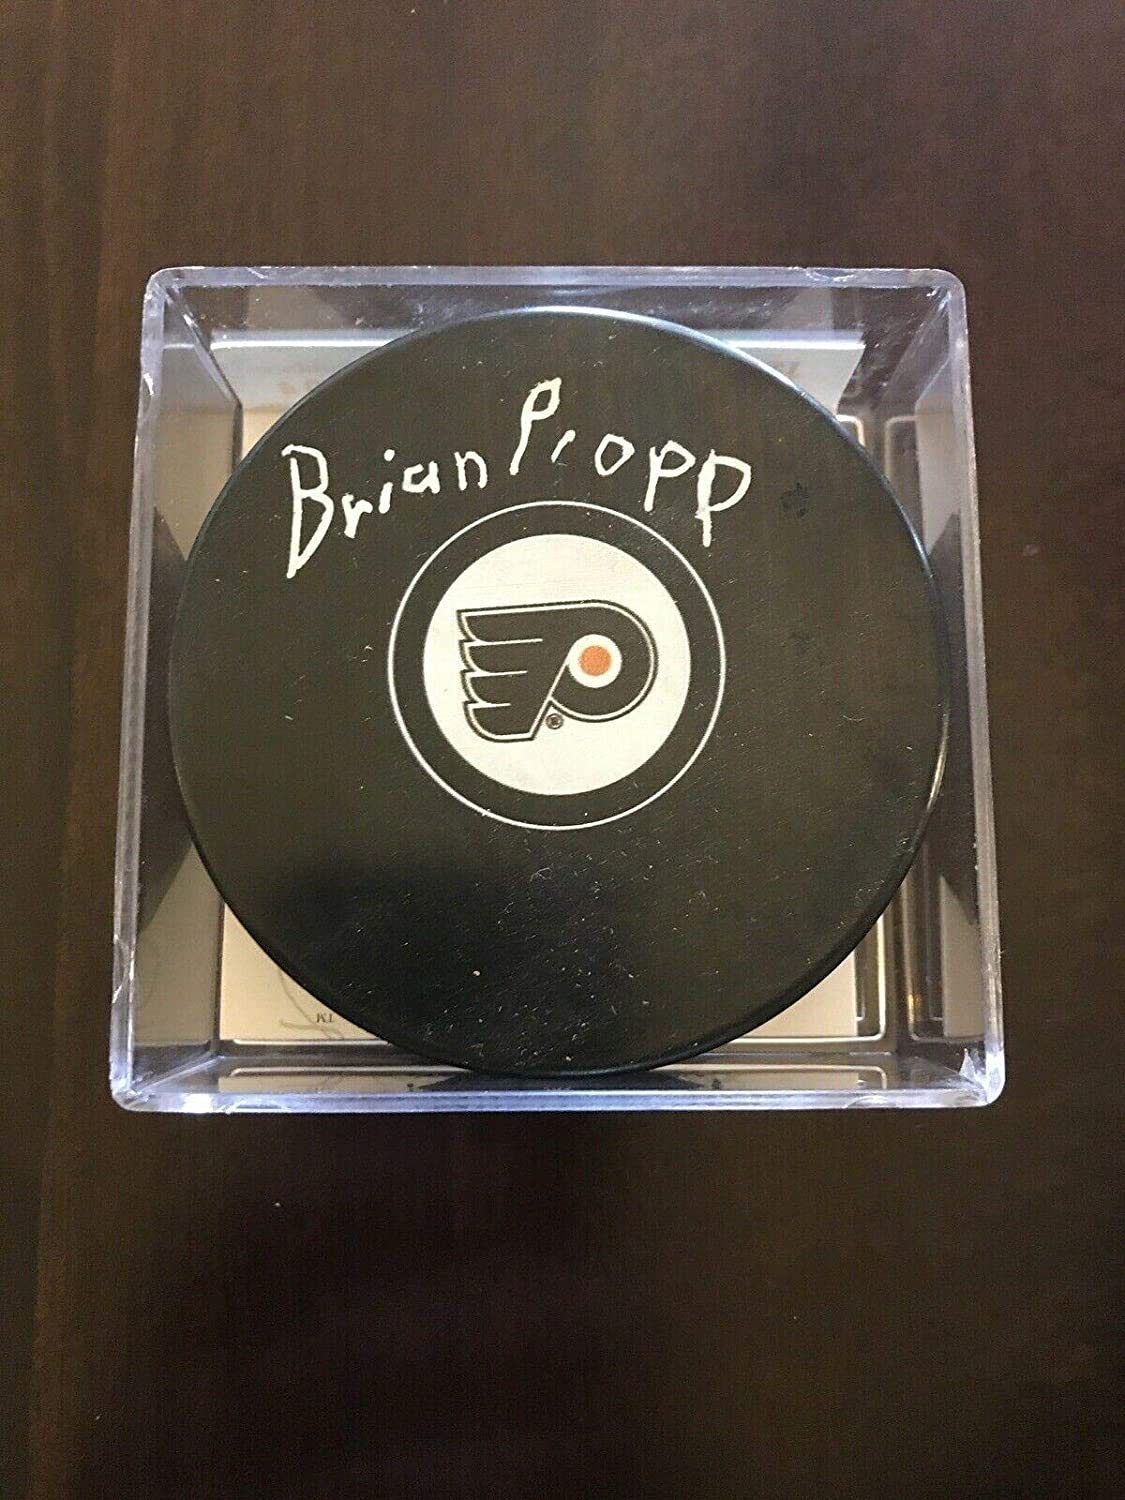 Brian Propp Signed Hockey Puck - JSA Certified - Autographed NHL Pucks